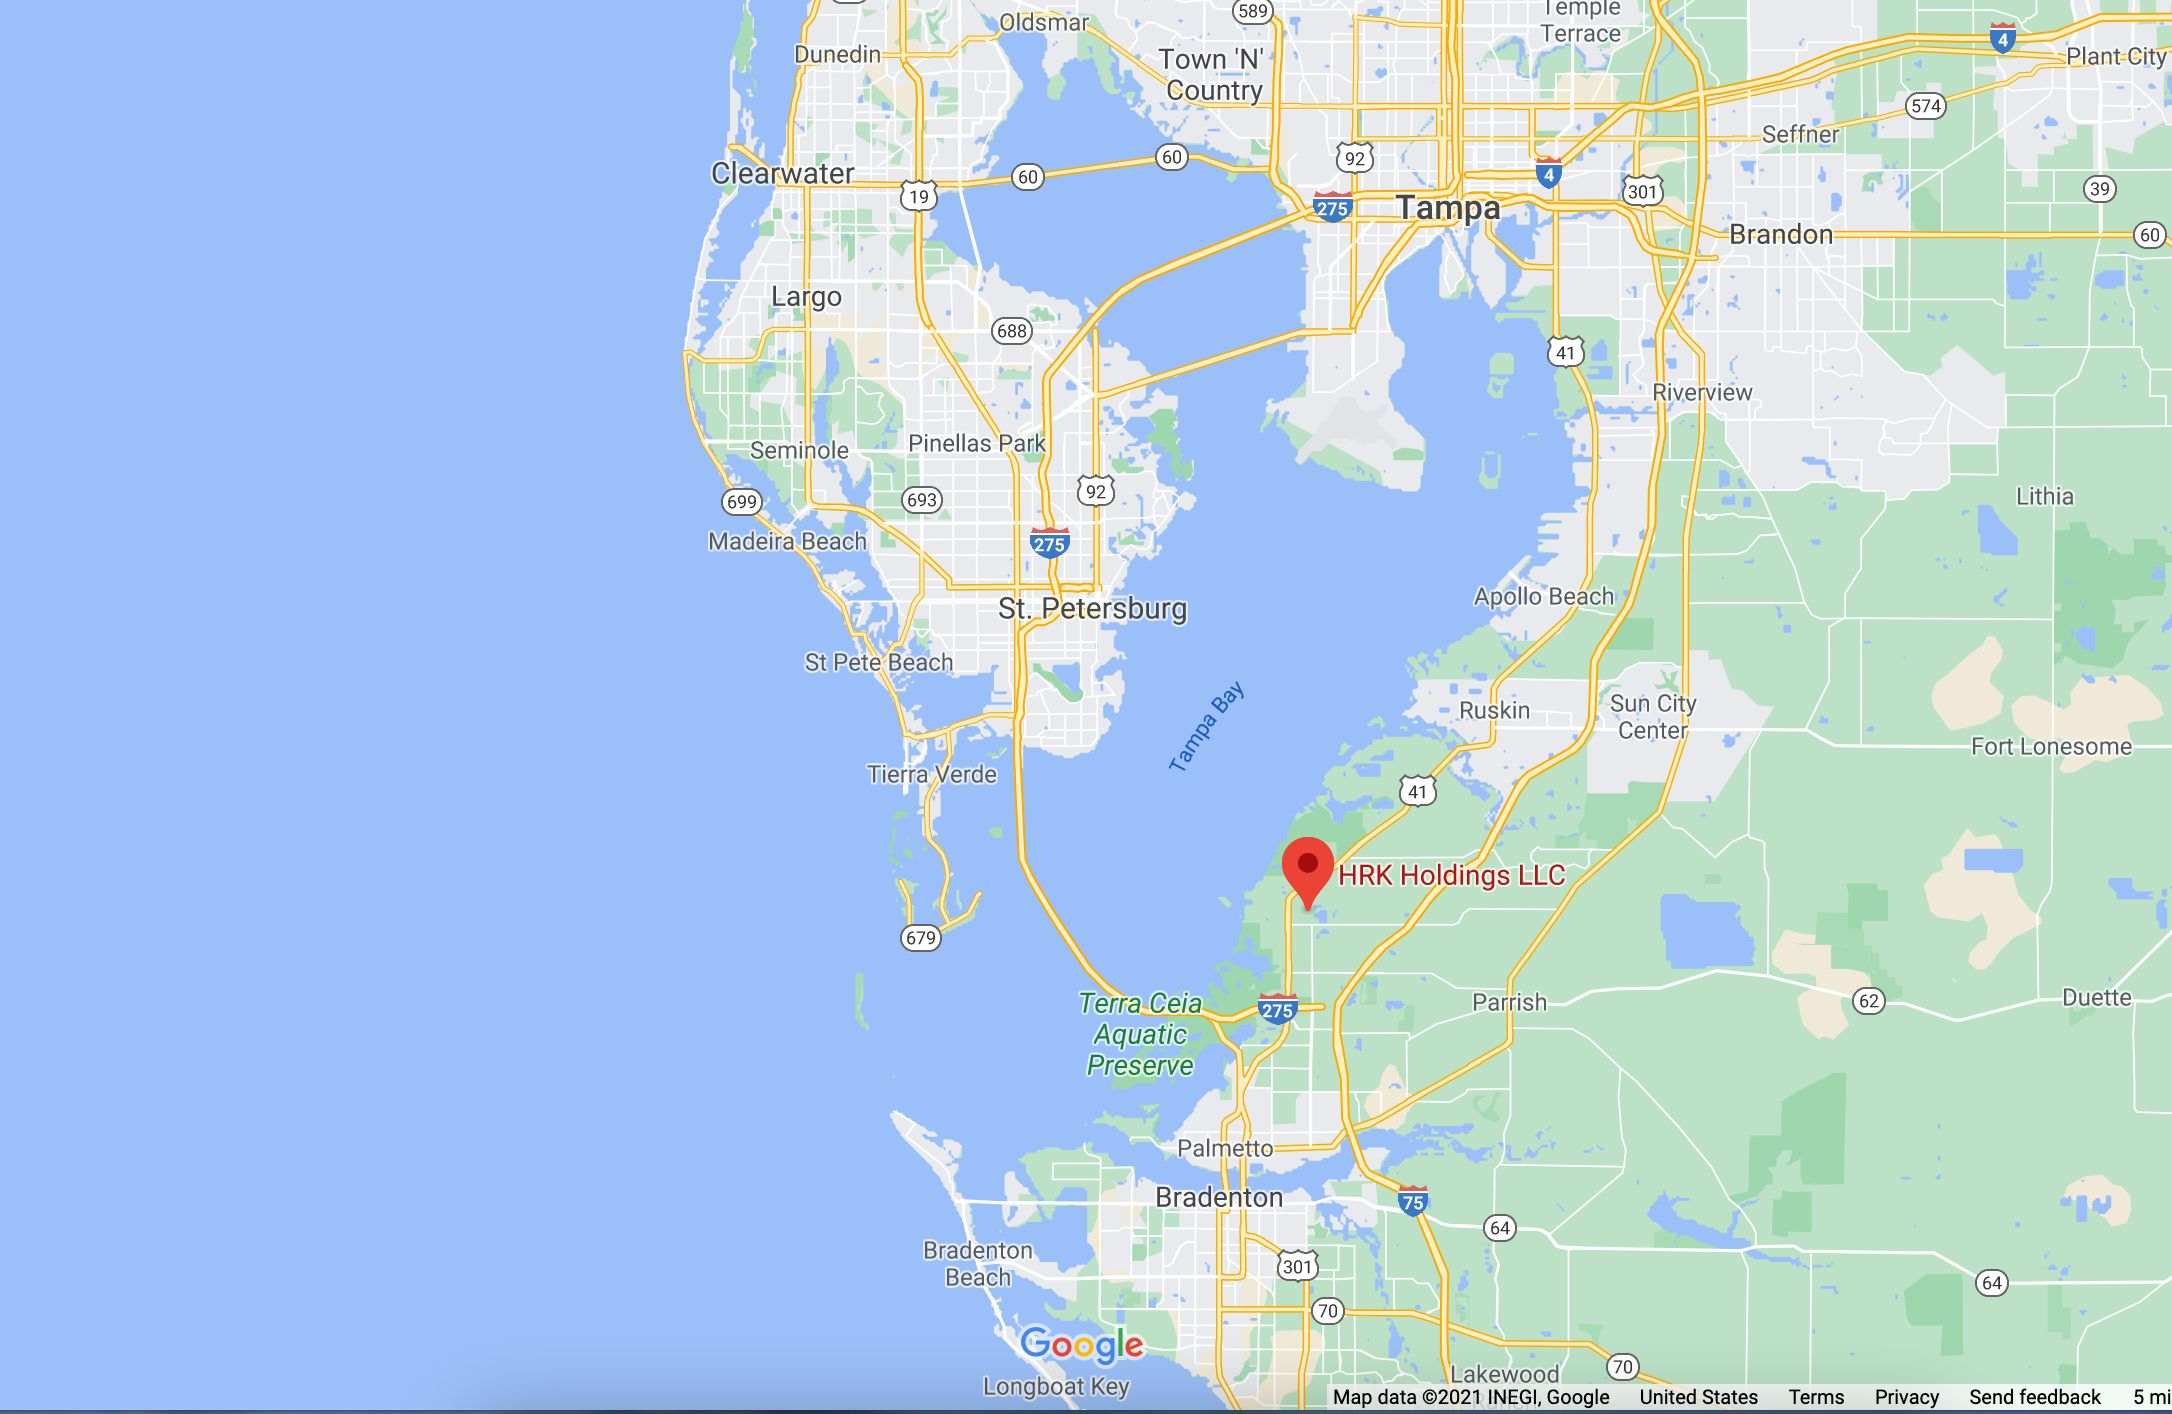 The reservoir, which is owned by HRK Holdings, is located near the Tampa Bay.